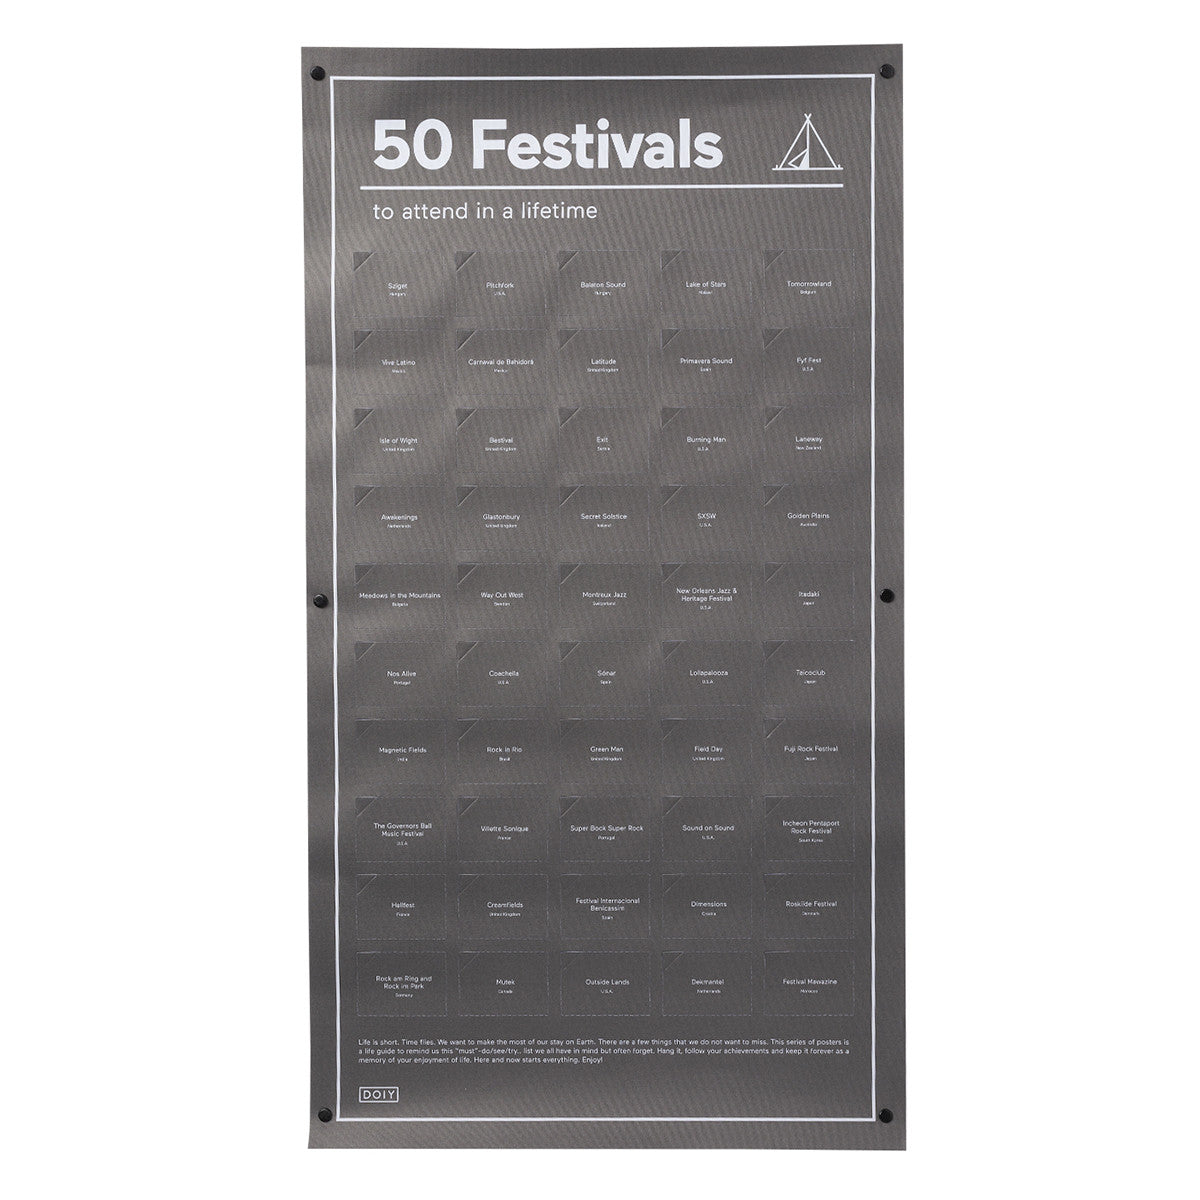 DOIY 50 Festivals To Attend In A Lifetime Poster